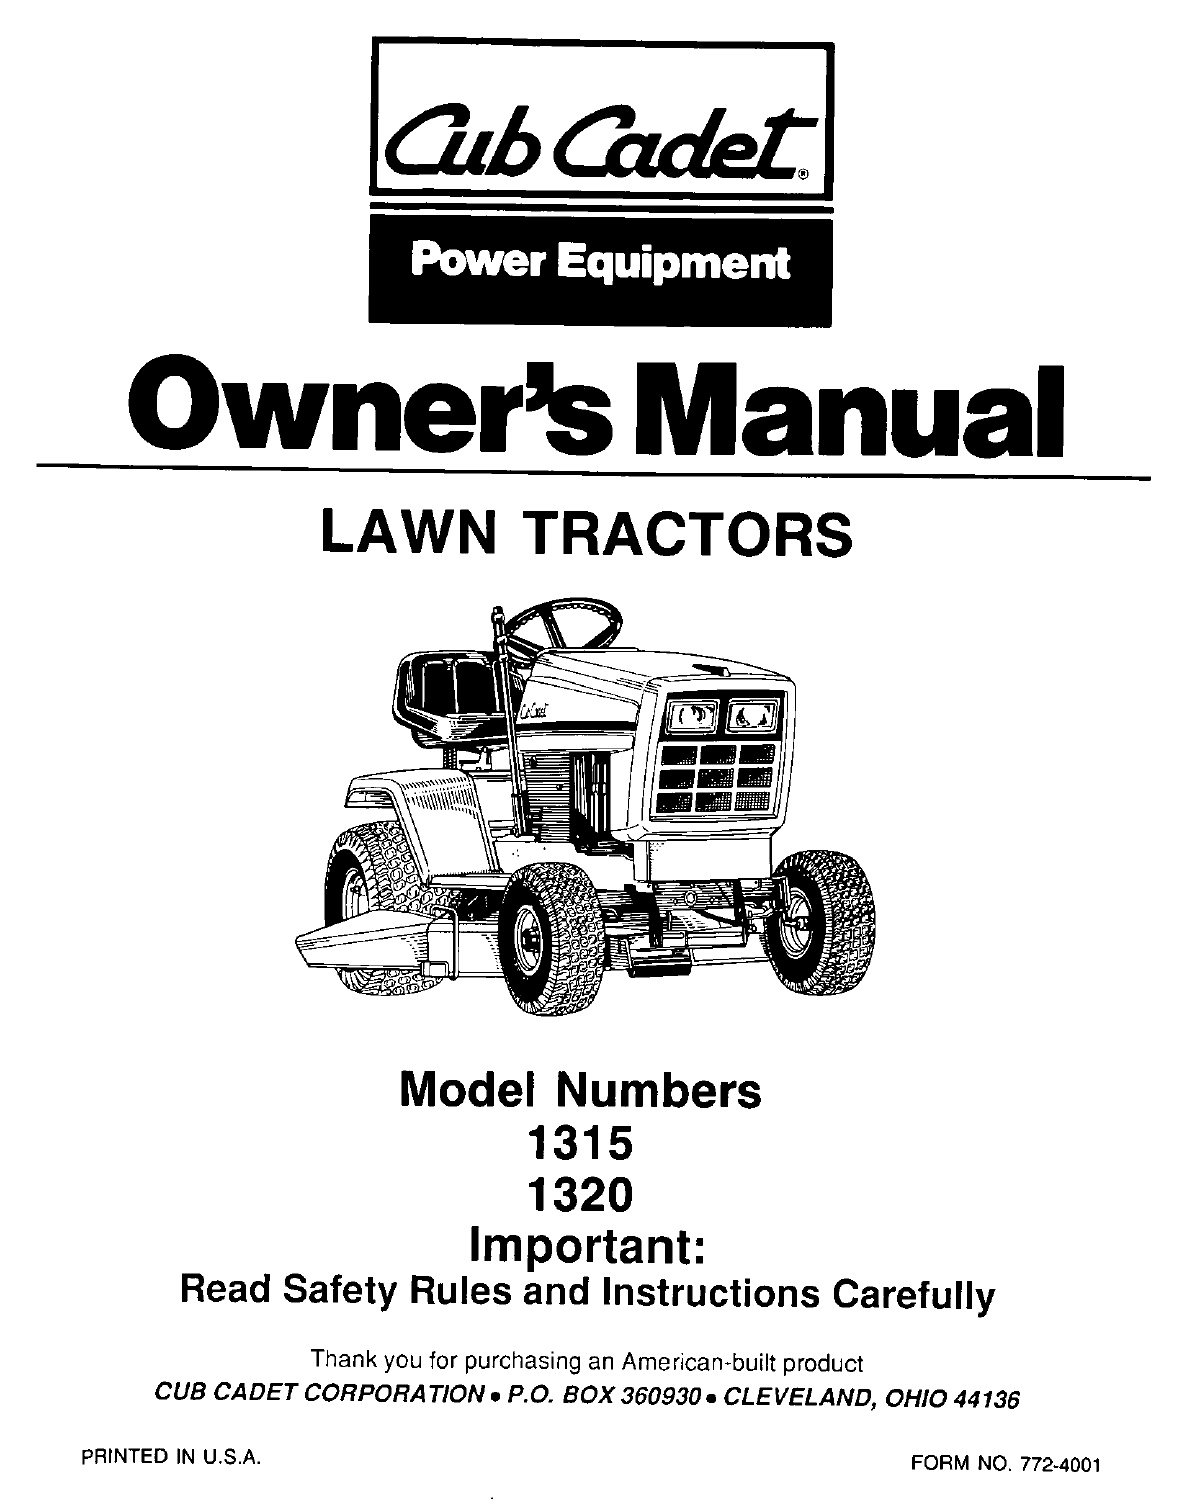 b9d9a24b f7b6 47c0 a3de 1c8daf104c36 bg1 cub cadet lawn mower 1320 user guide manualsonline com cub cadet 1315 wiring diagram at bakdesigns.co